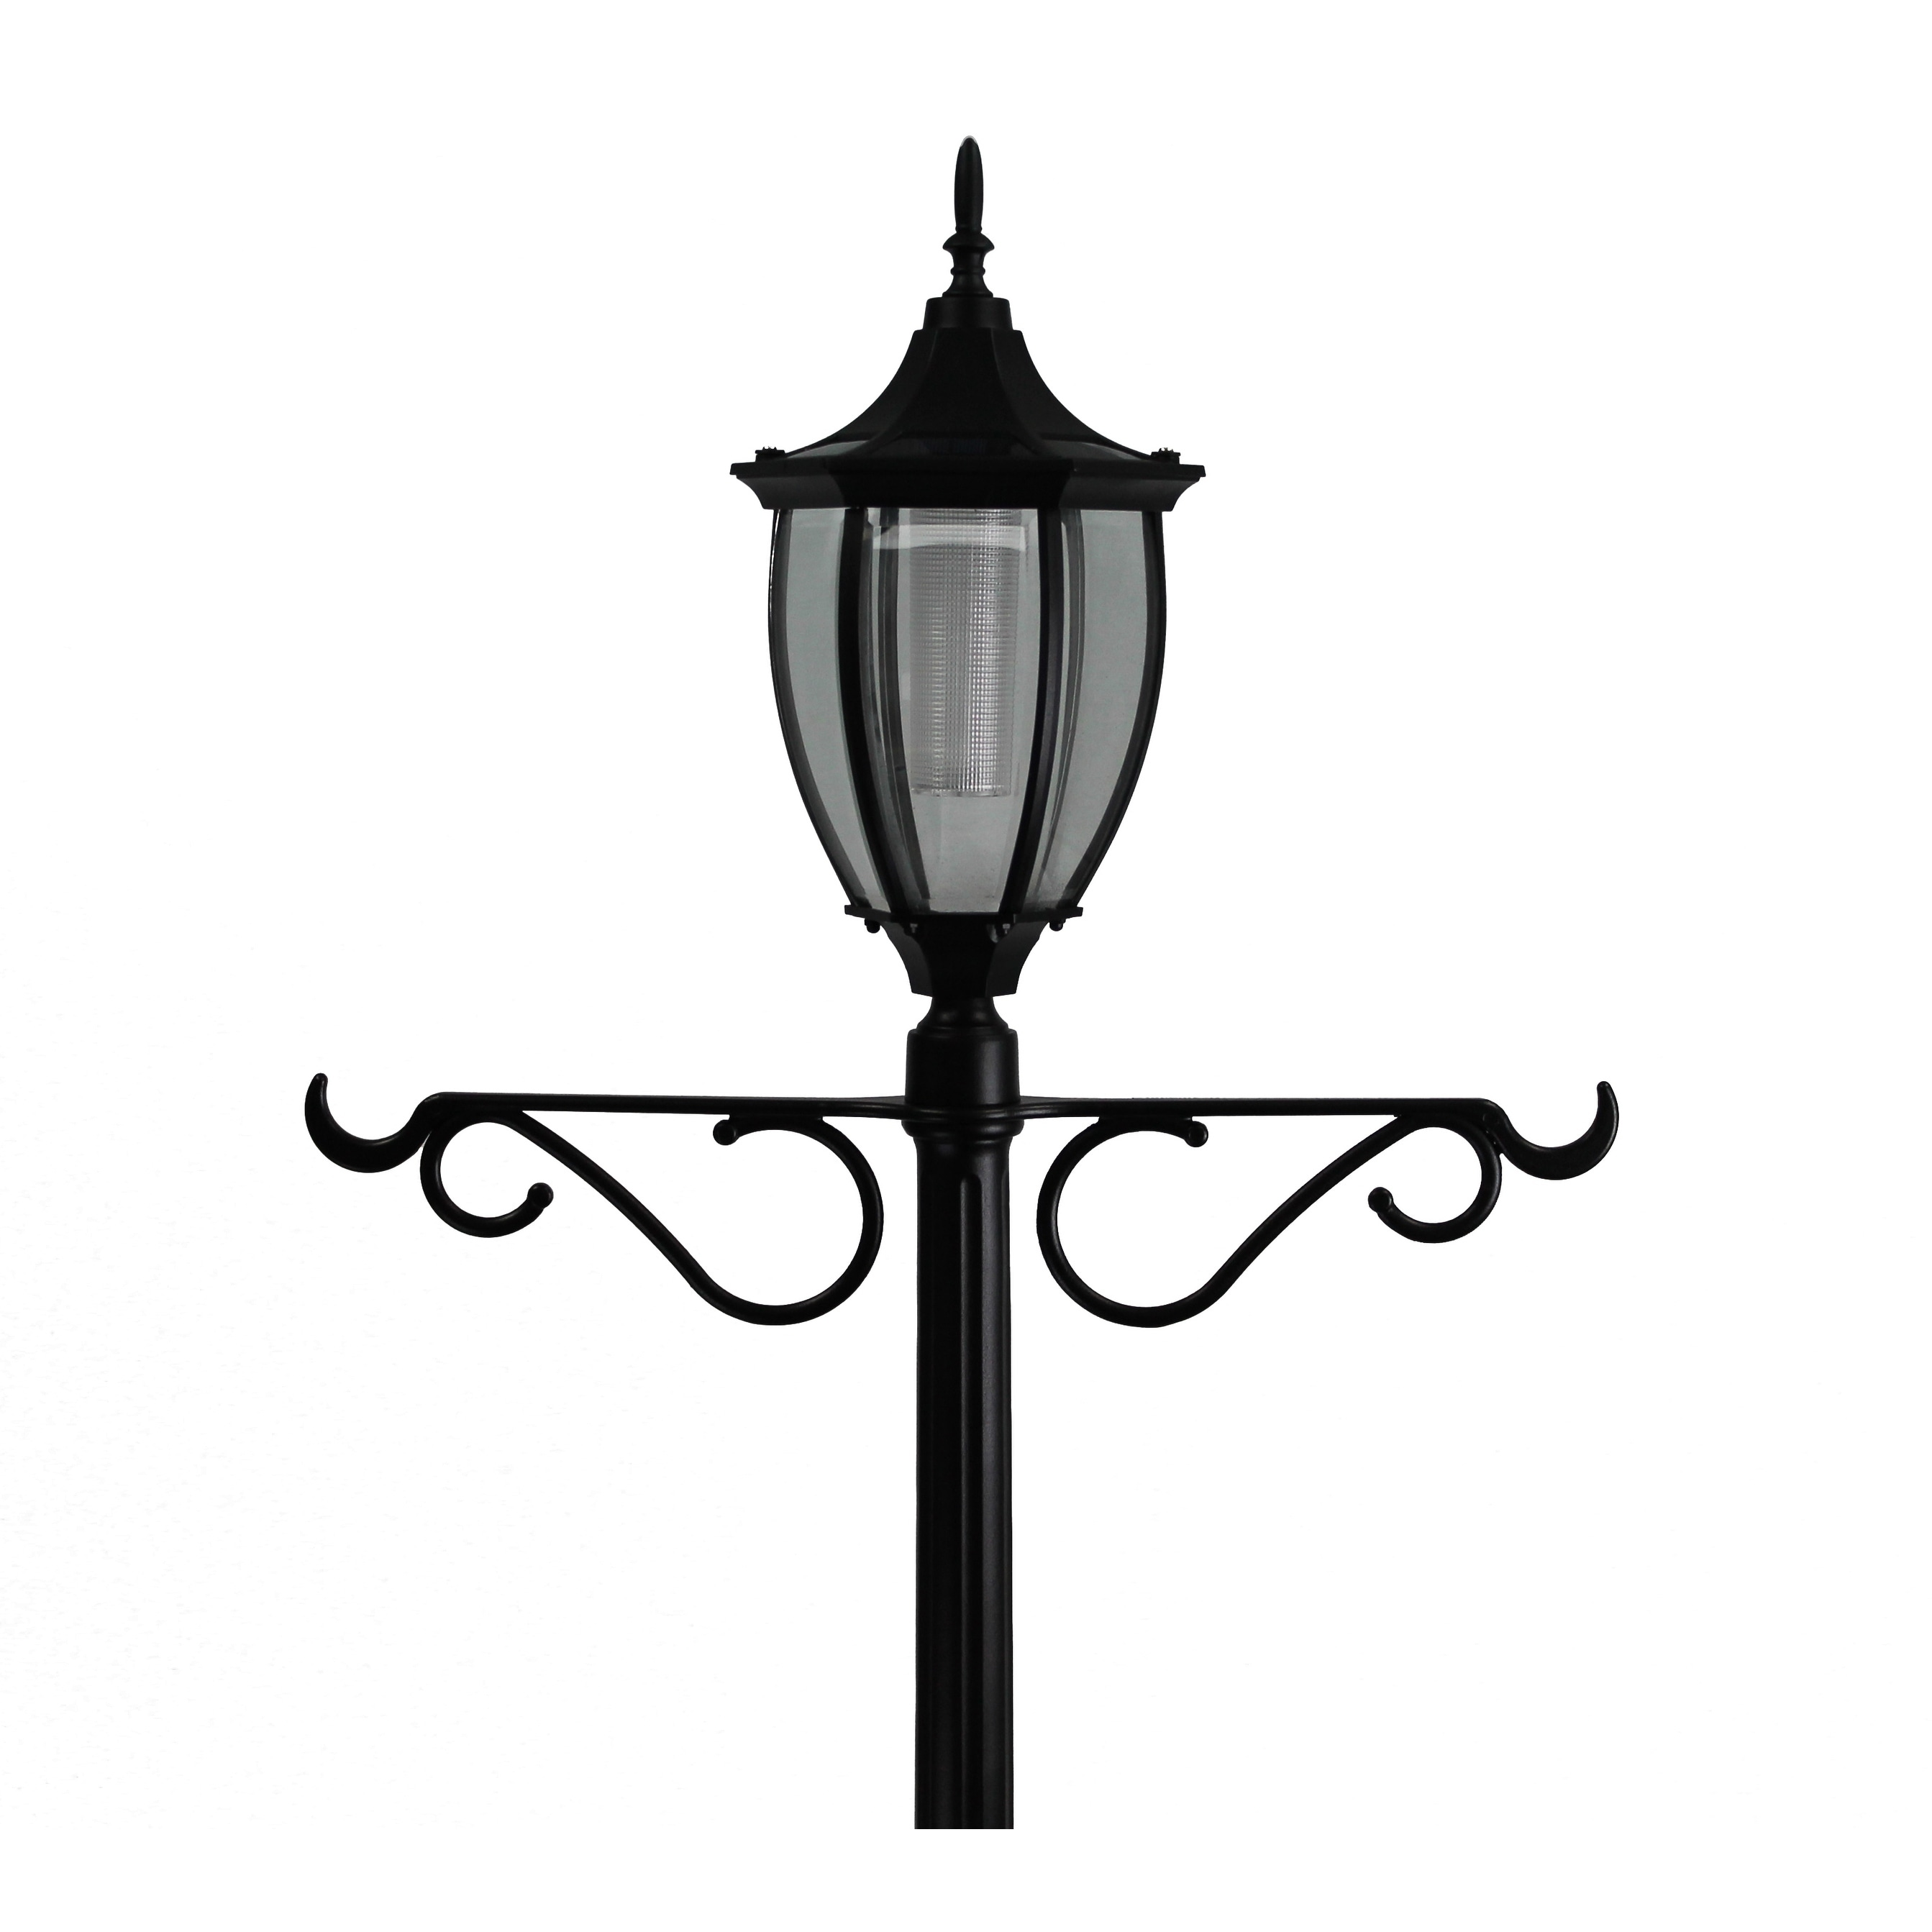 Solar Lamp Post Sun Ray Crestmont Solar Lamp Post And Planter With Hanger Black